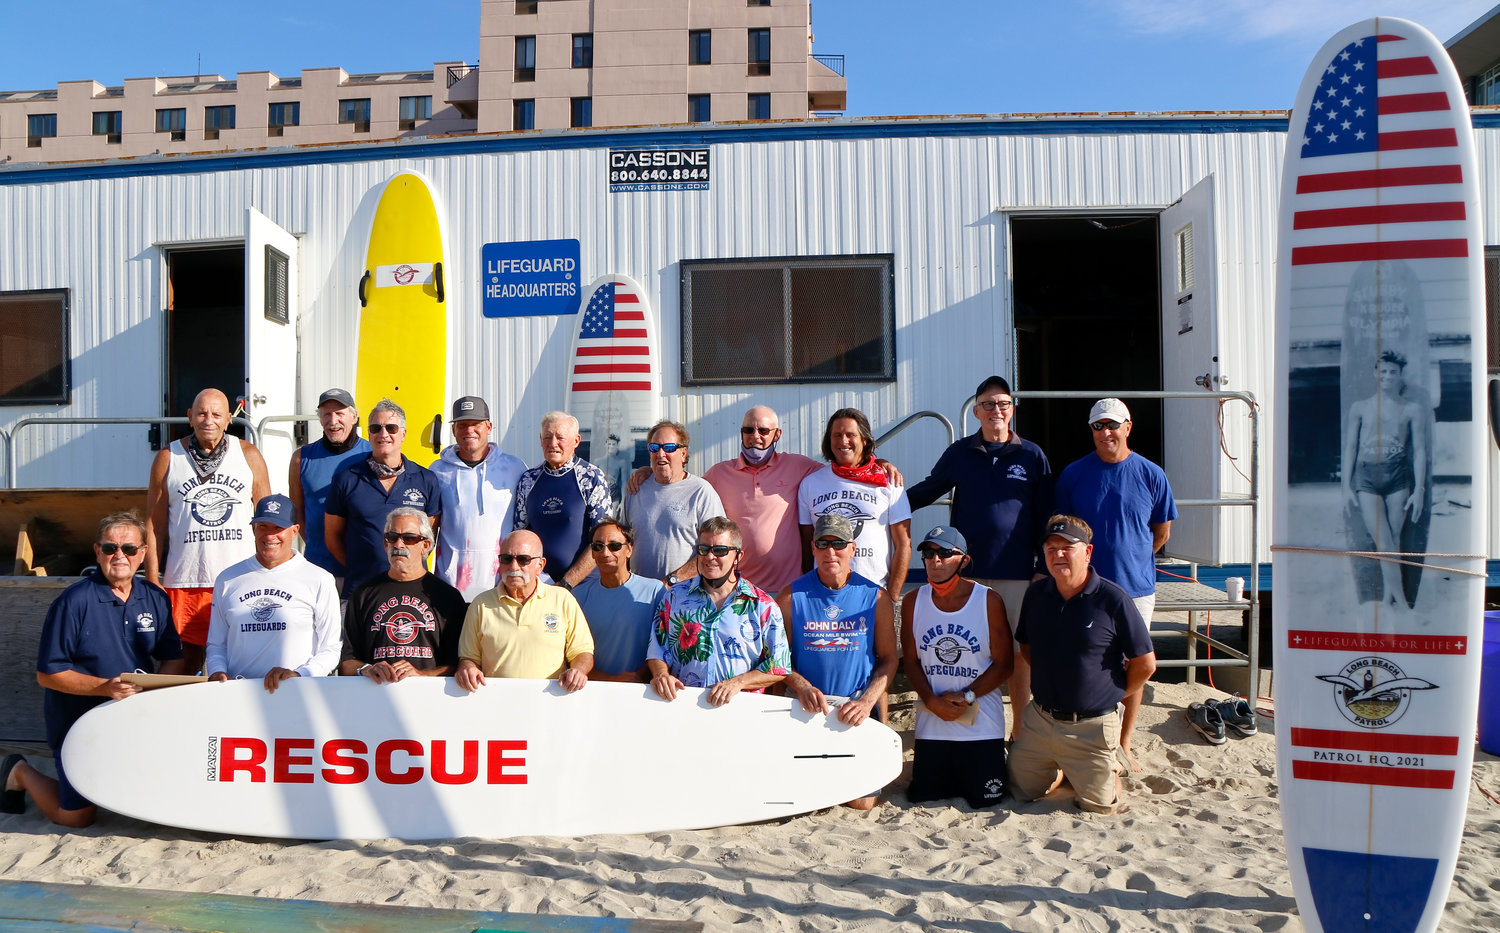 The Long Beach Lifeguards Alumni Association recently raffled off a surfboard in memory of city lifeguard Richard Delury as a fundraiser. Among those at the event was Delury's brother, Mike, top row, fourth from right. Richard Delury died of natural causes in May.